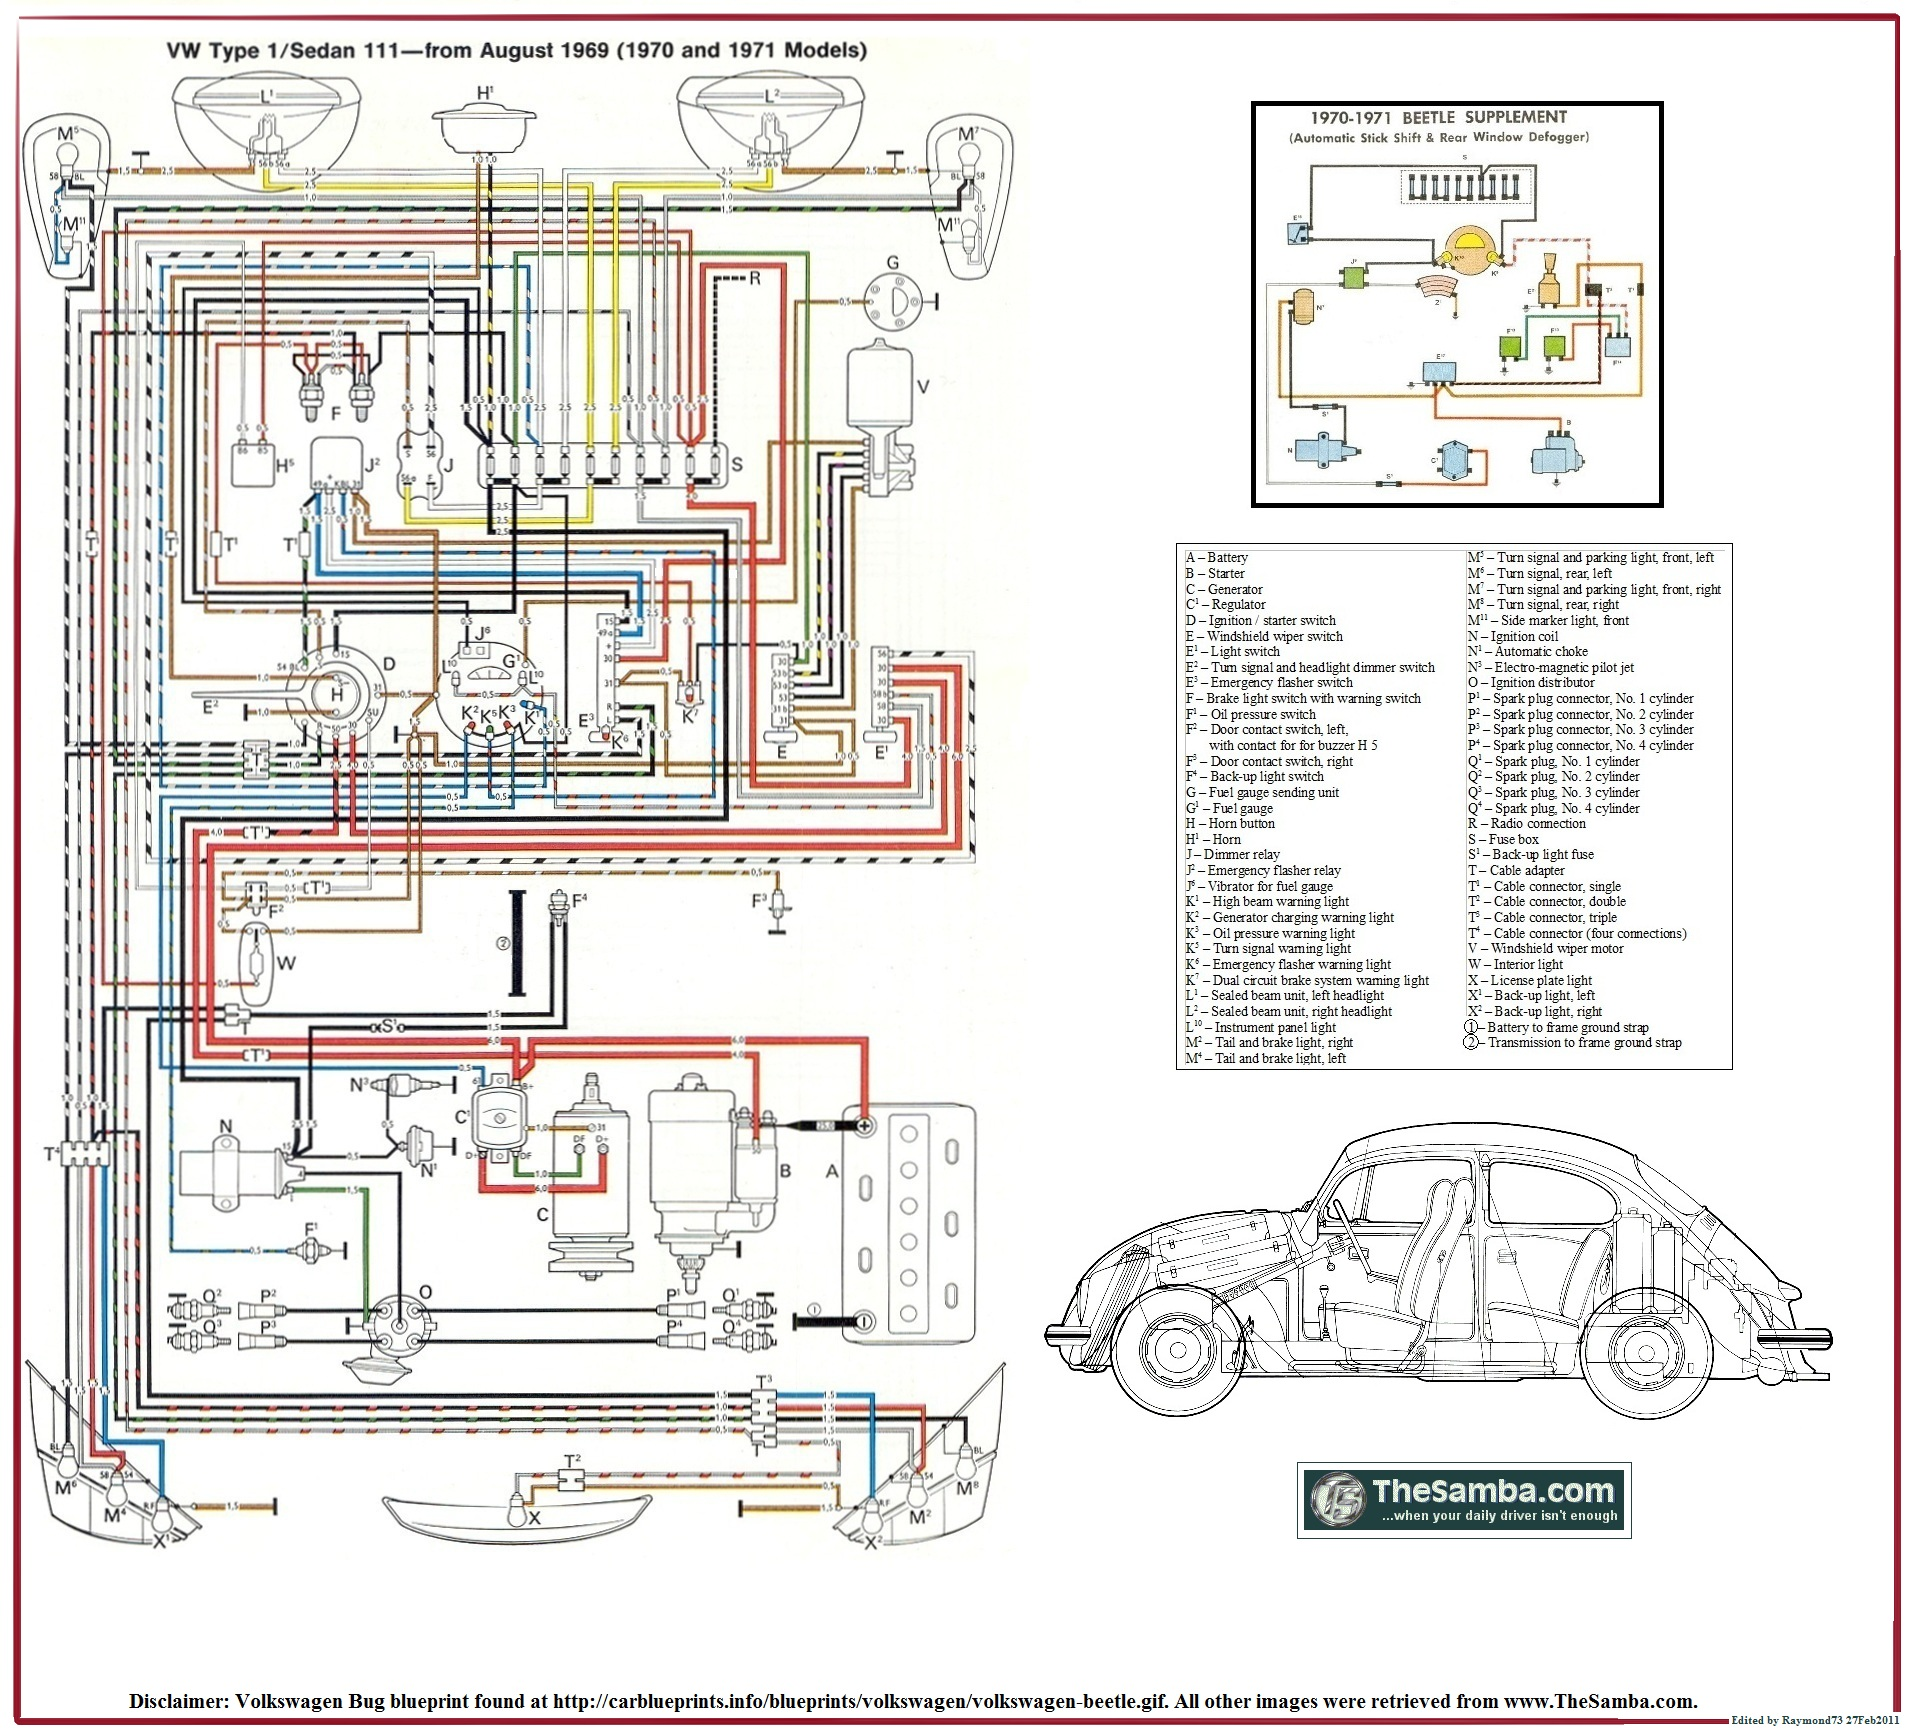 1970_VW_Type_1_Poster thesamba com beetle late model super 1968 up view topic vw beetle wiring diagram at couponss.co